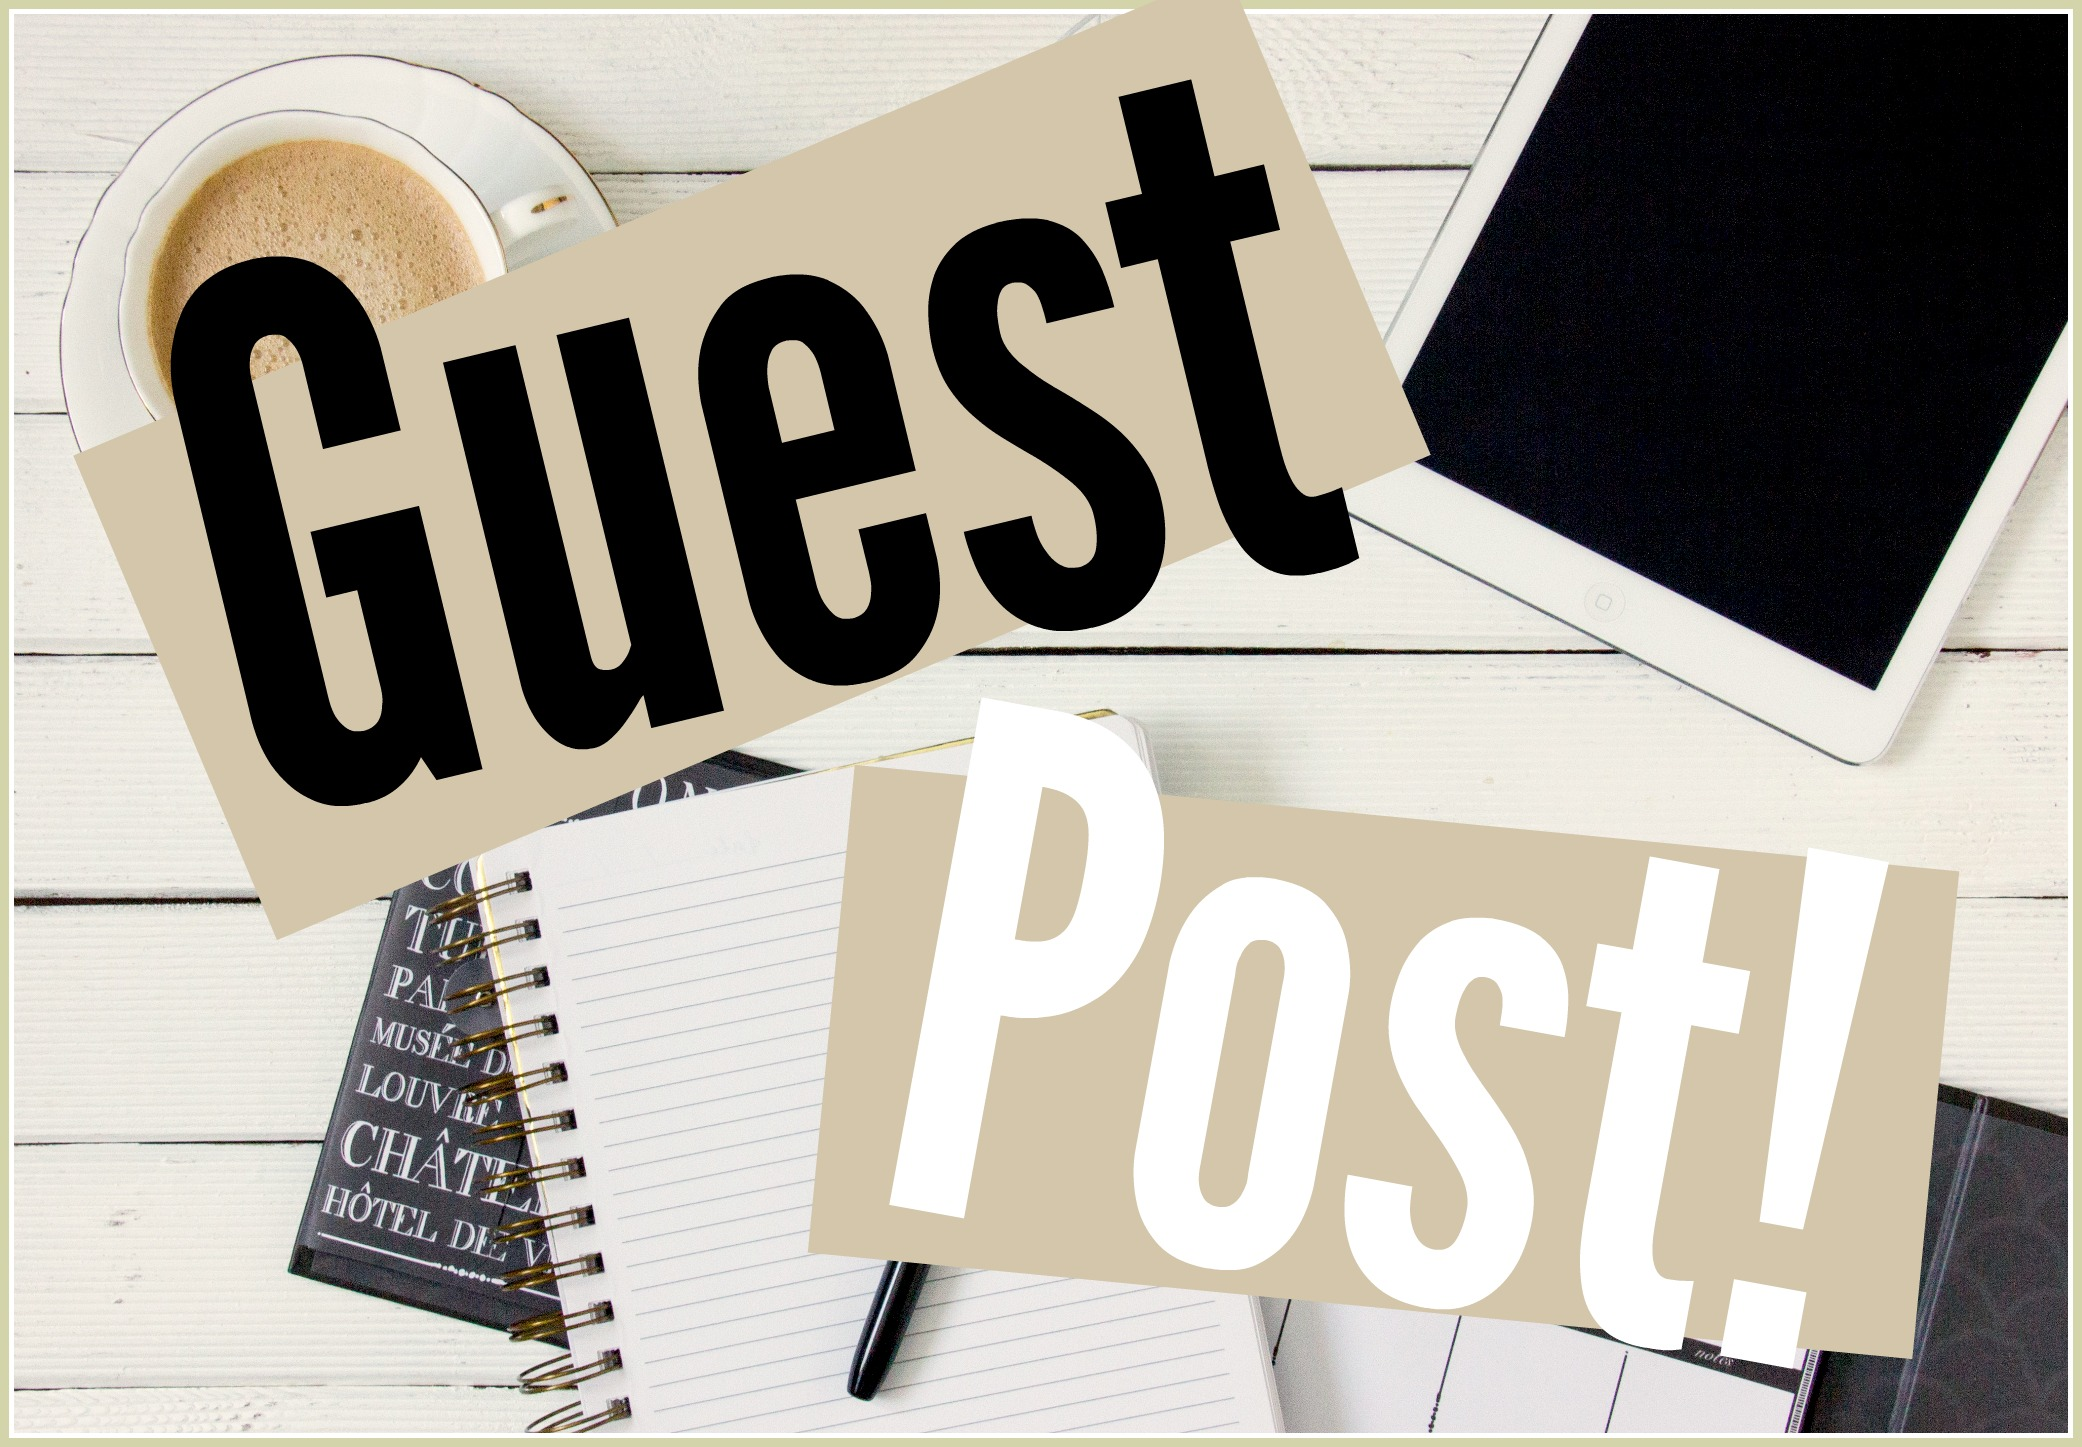 Guest Post Your Quality Article On Worldnews. com. ng